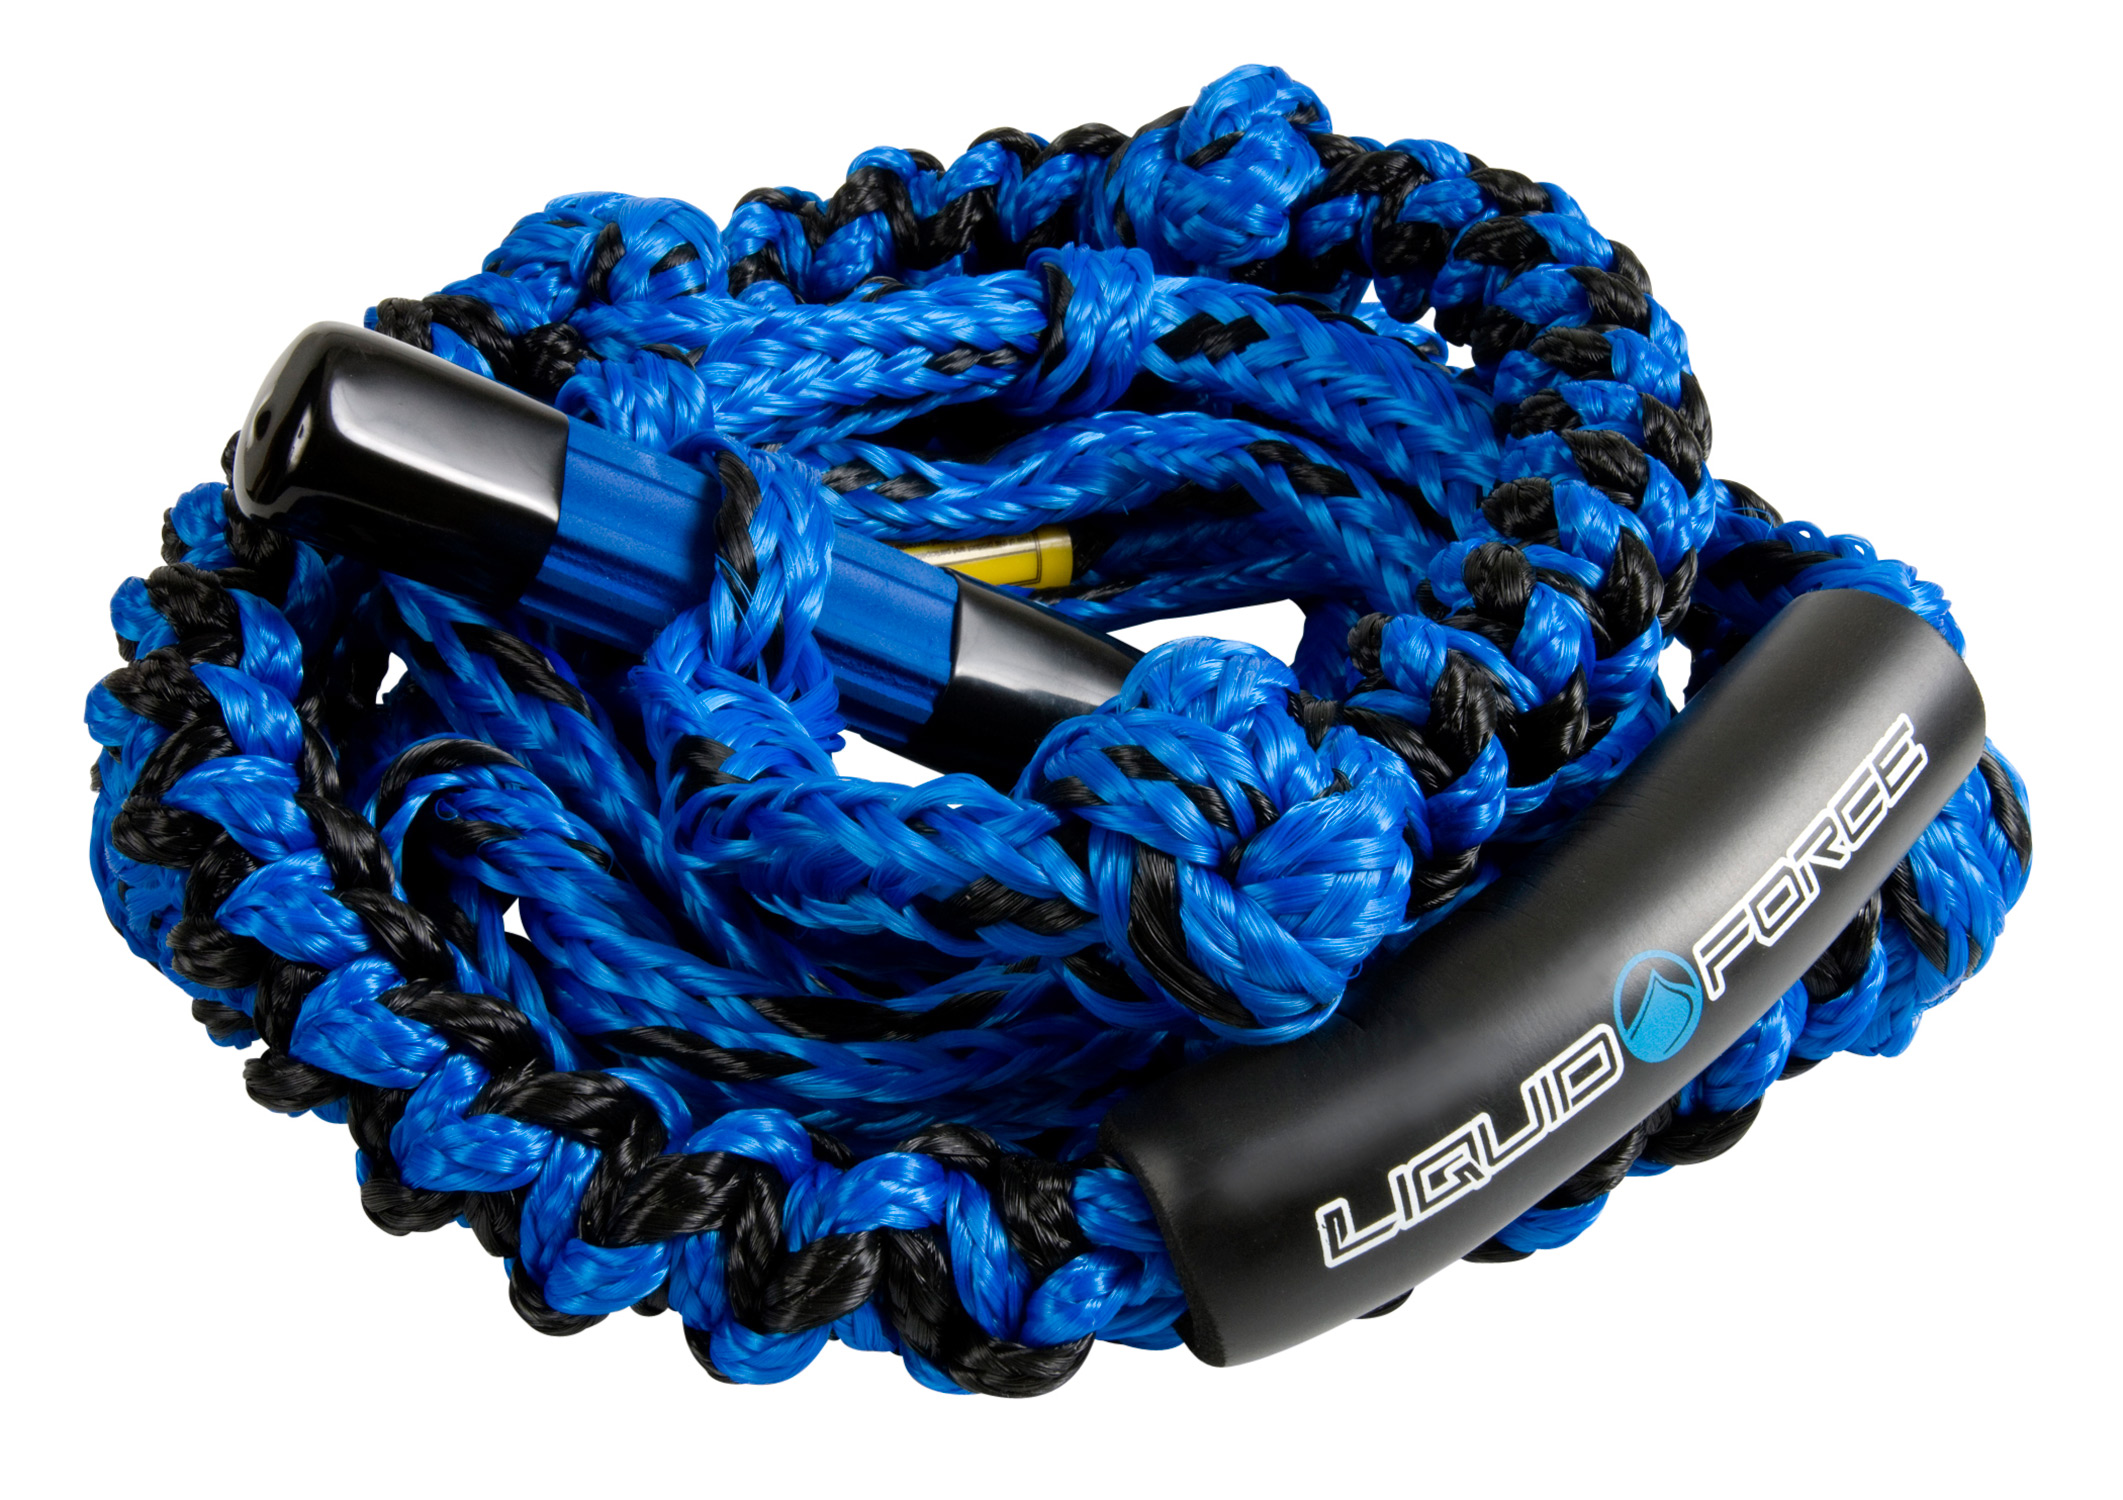 "Surf Extra safe T-handle design features super sturdy 5/8"" rope and an easy grip handle.  A unique knotted coil design gives you plenty of space to grip... Pull yourself into the sweet spot and get your slash on - 24"" Foot Braided PE Line 3 Sections - $41.95"